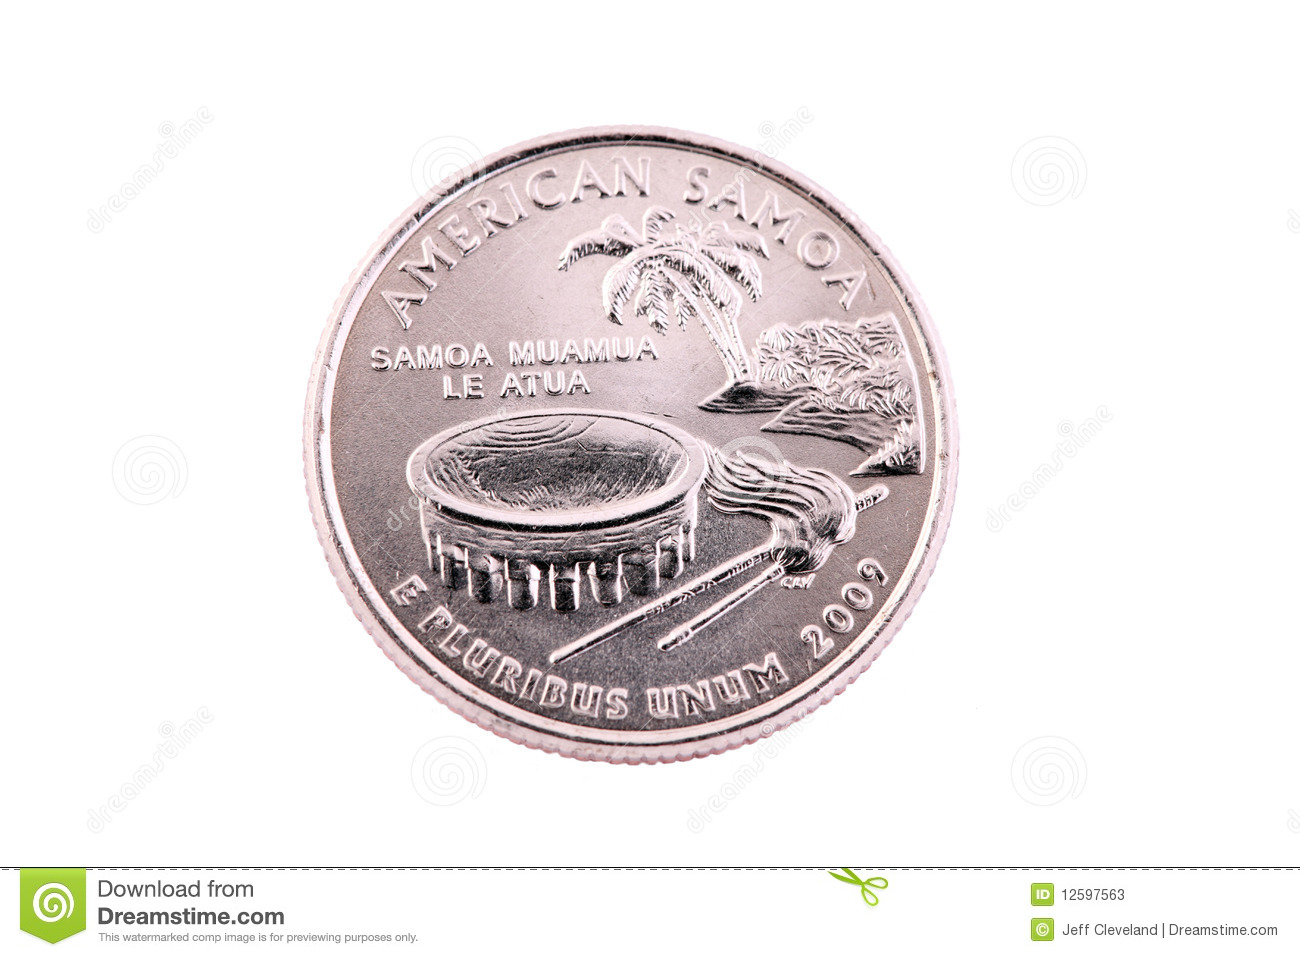 Tails Us American Samoa Quarter 2009 Coin Stock Photos   Image